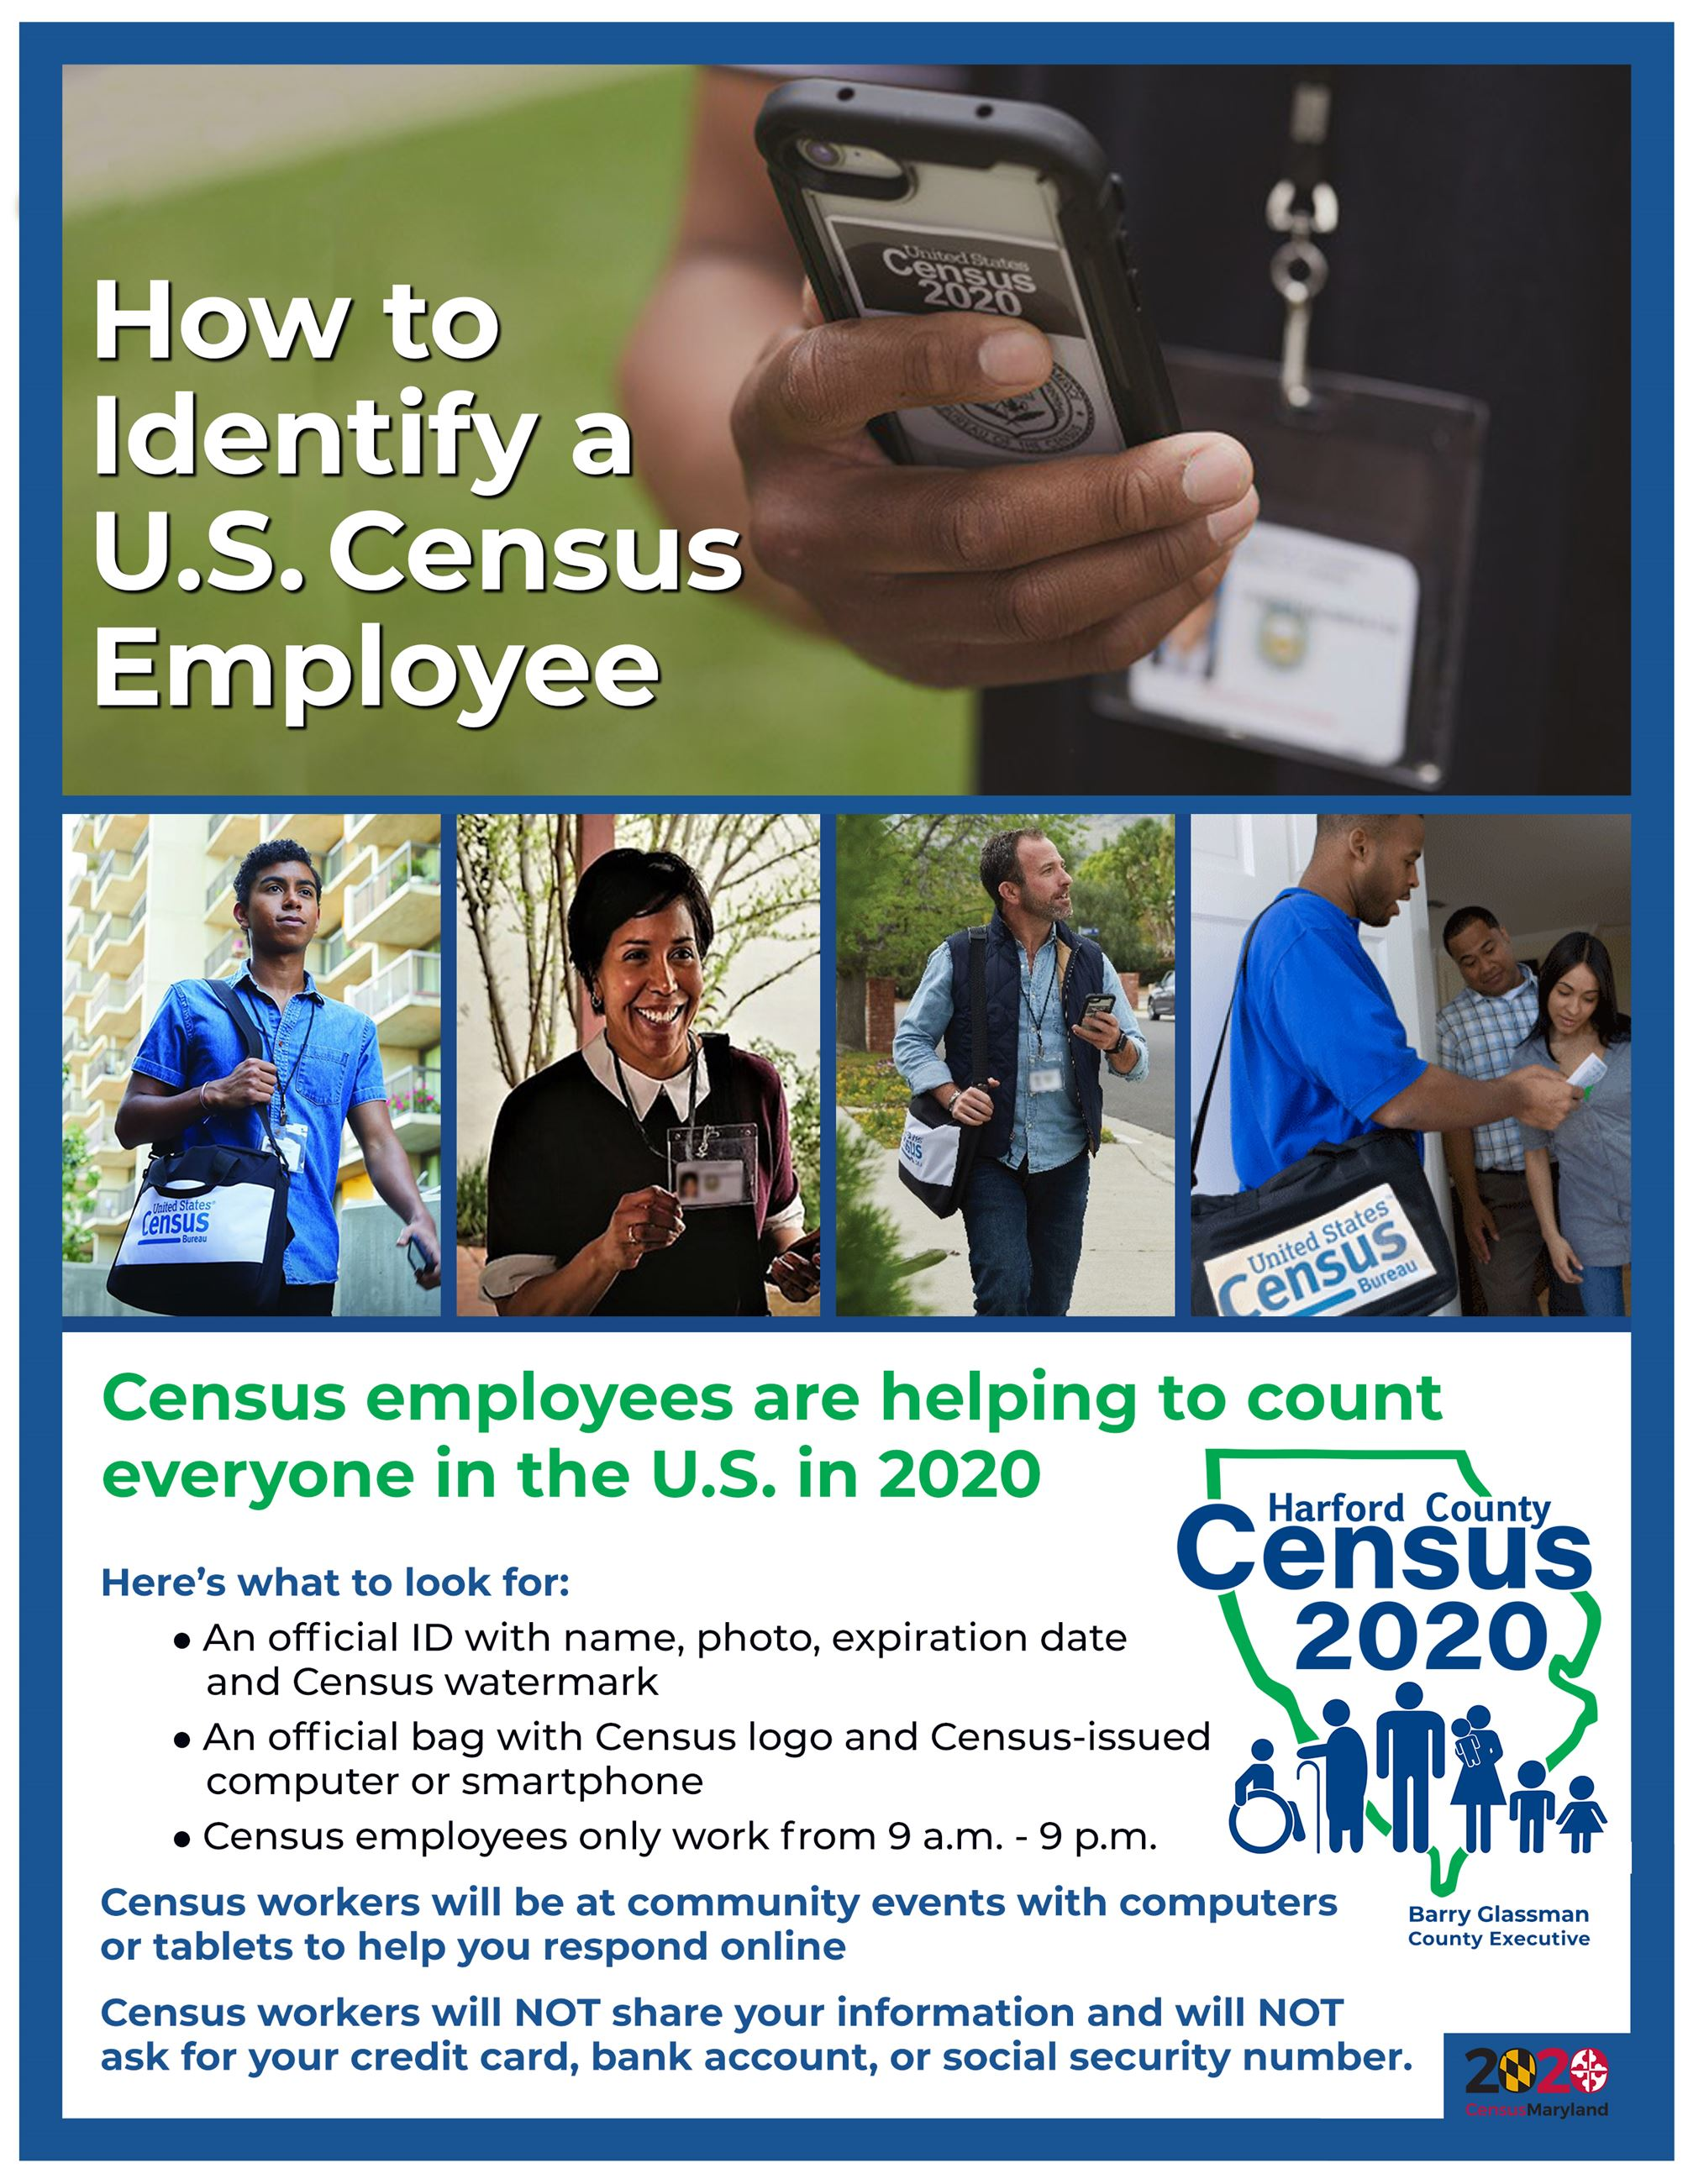 How to Identify a Census Employee flyer